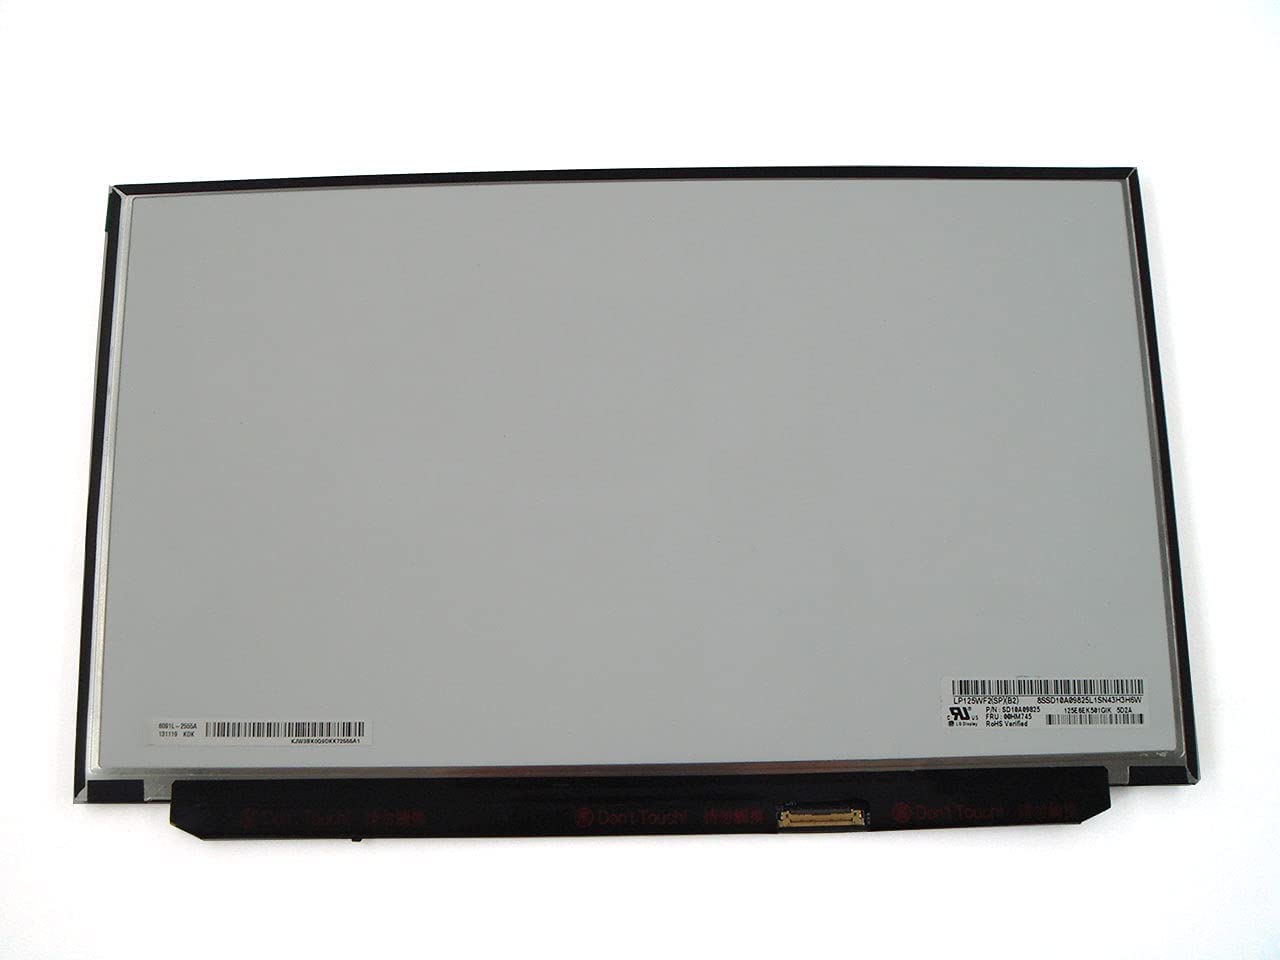 Genuine Parts for Lenovo ThinkPad X240 X250 X260 12.5 inch FHD (1920x1080) IPS LCD Screen Non-Touch 00HM745 00HN899